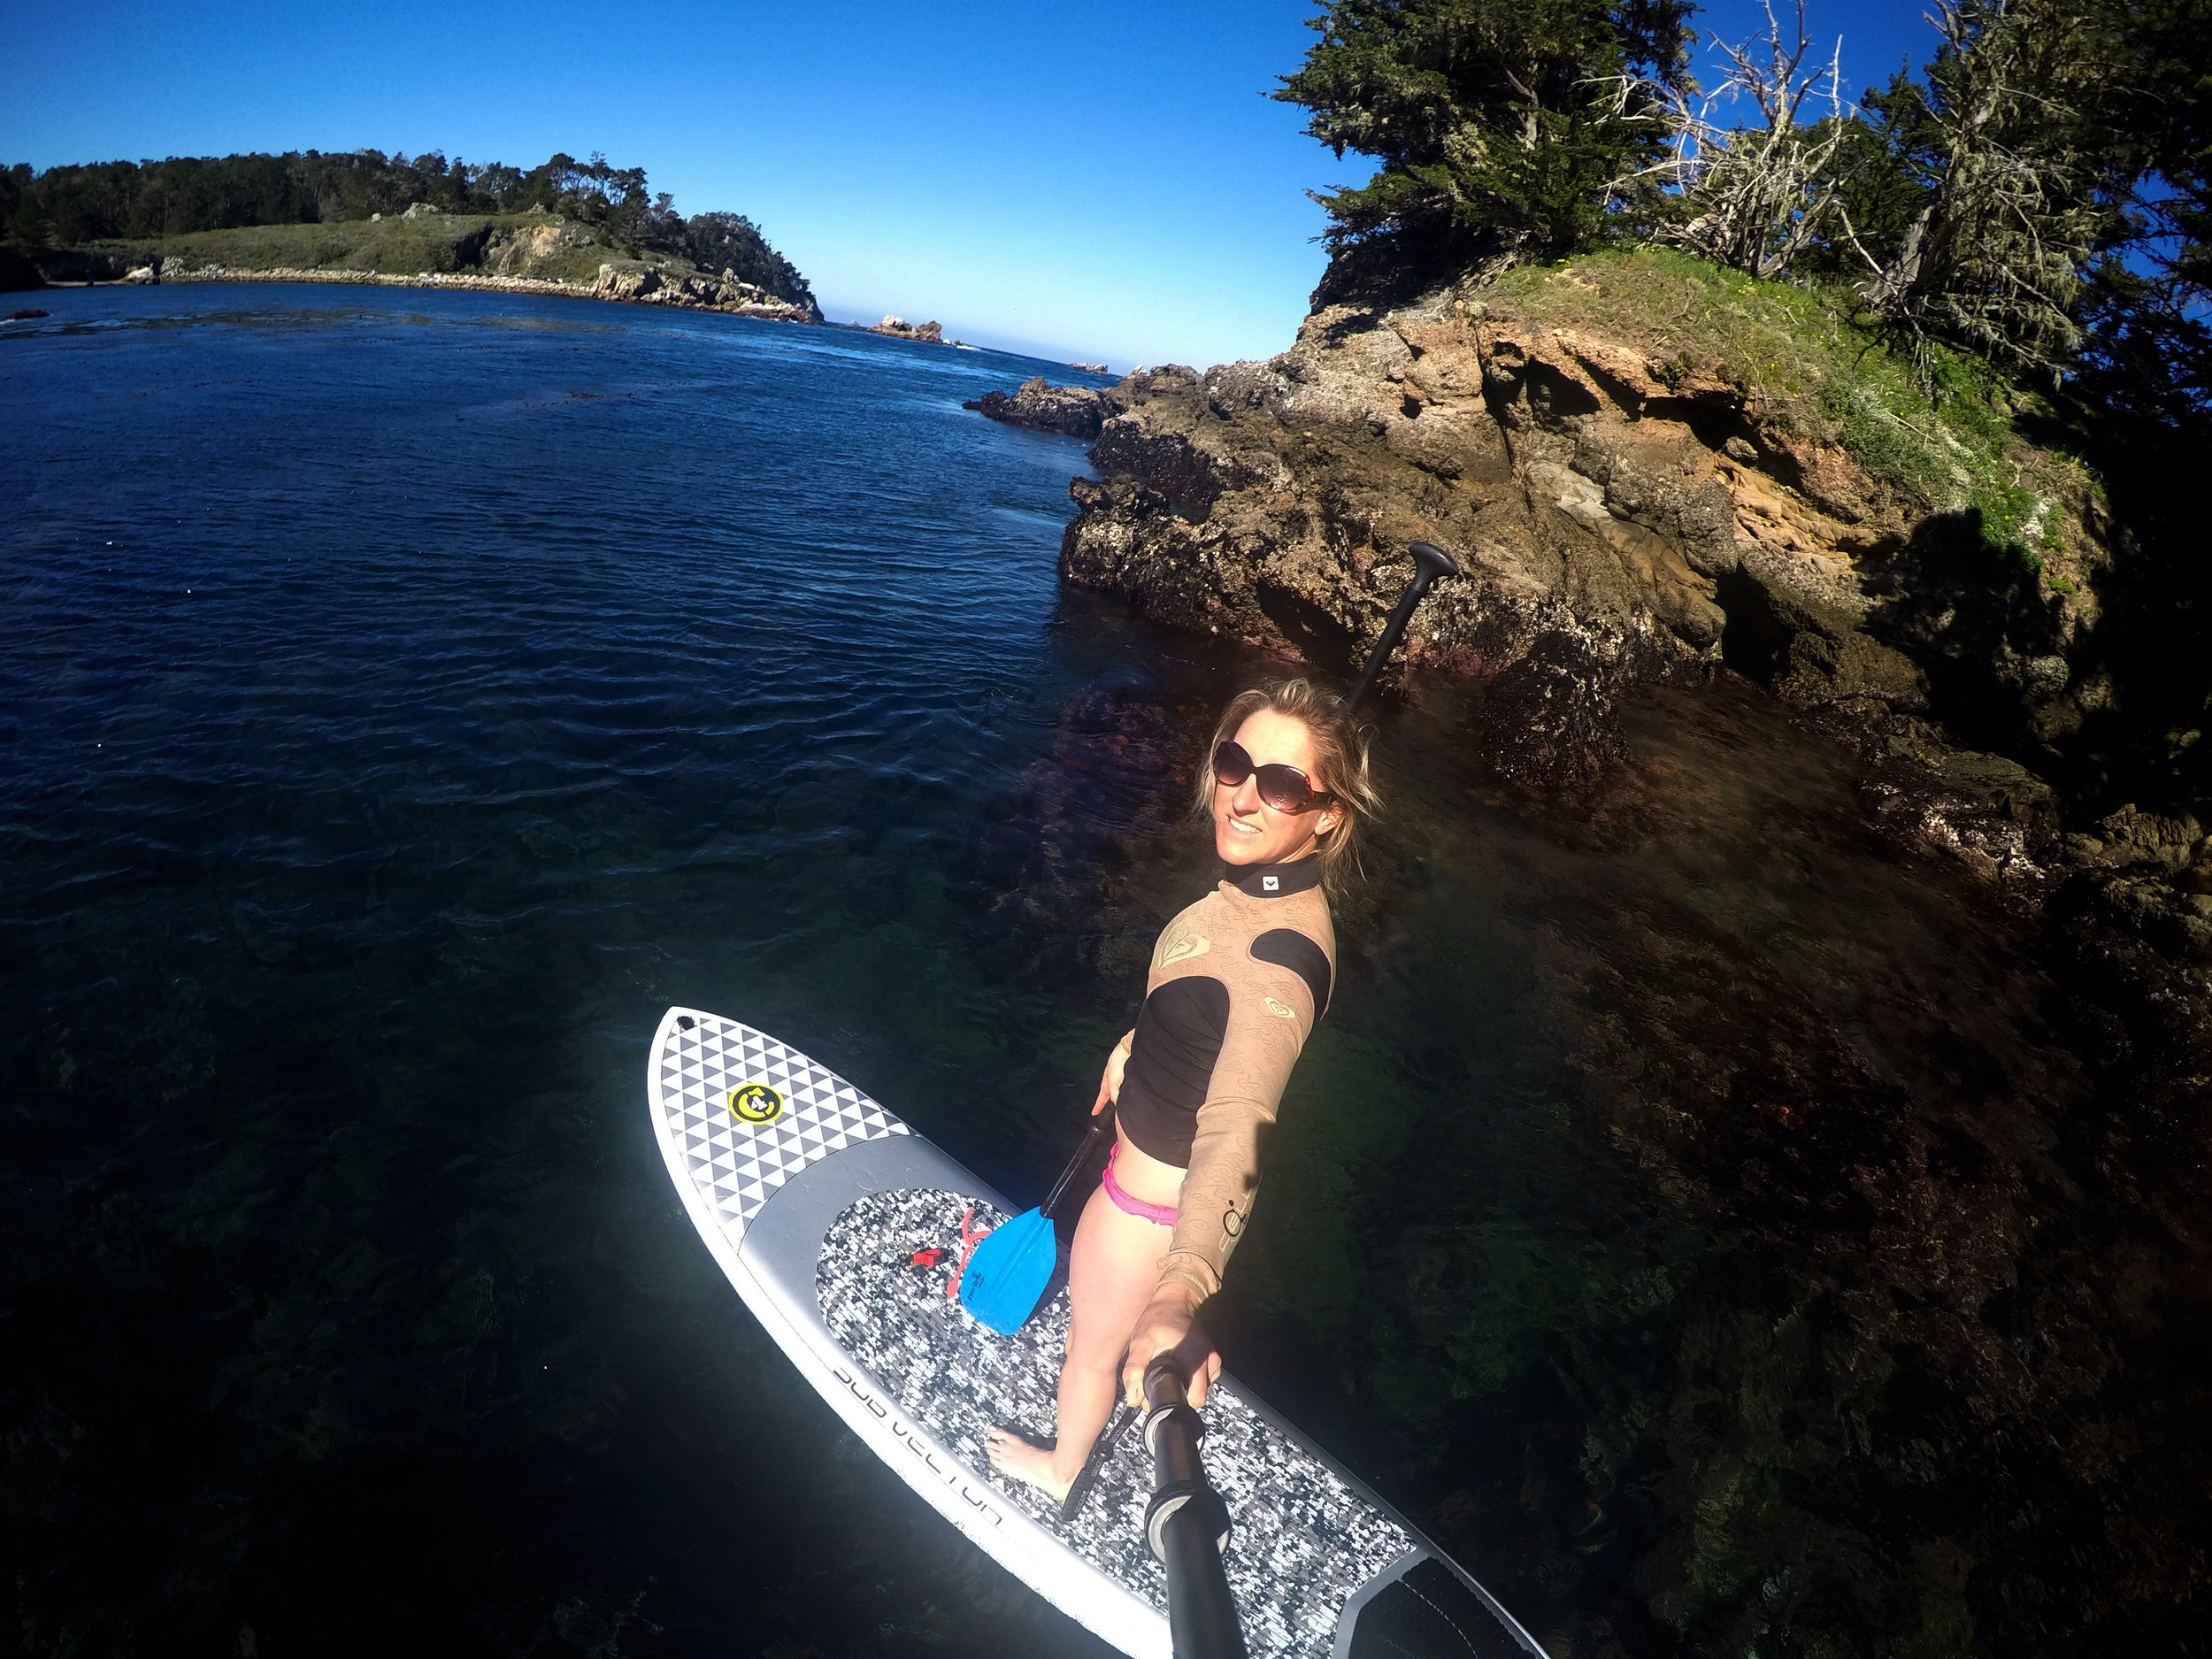 Stand up paddle boarding near Monterey California